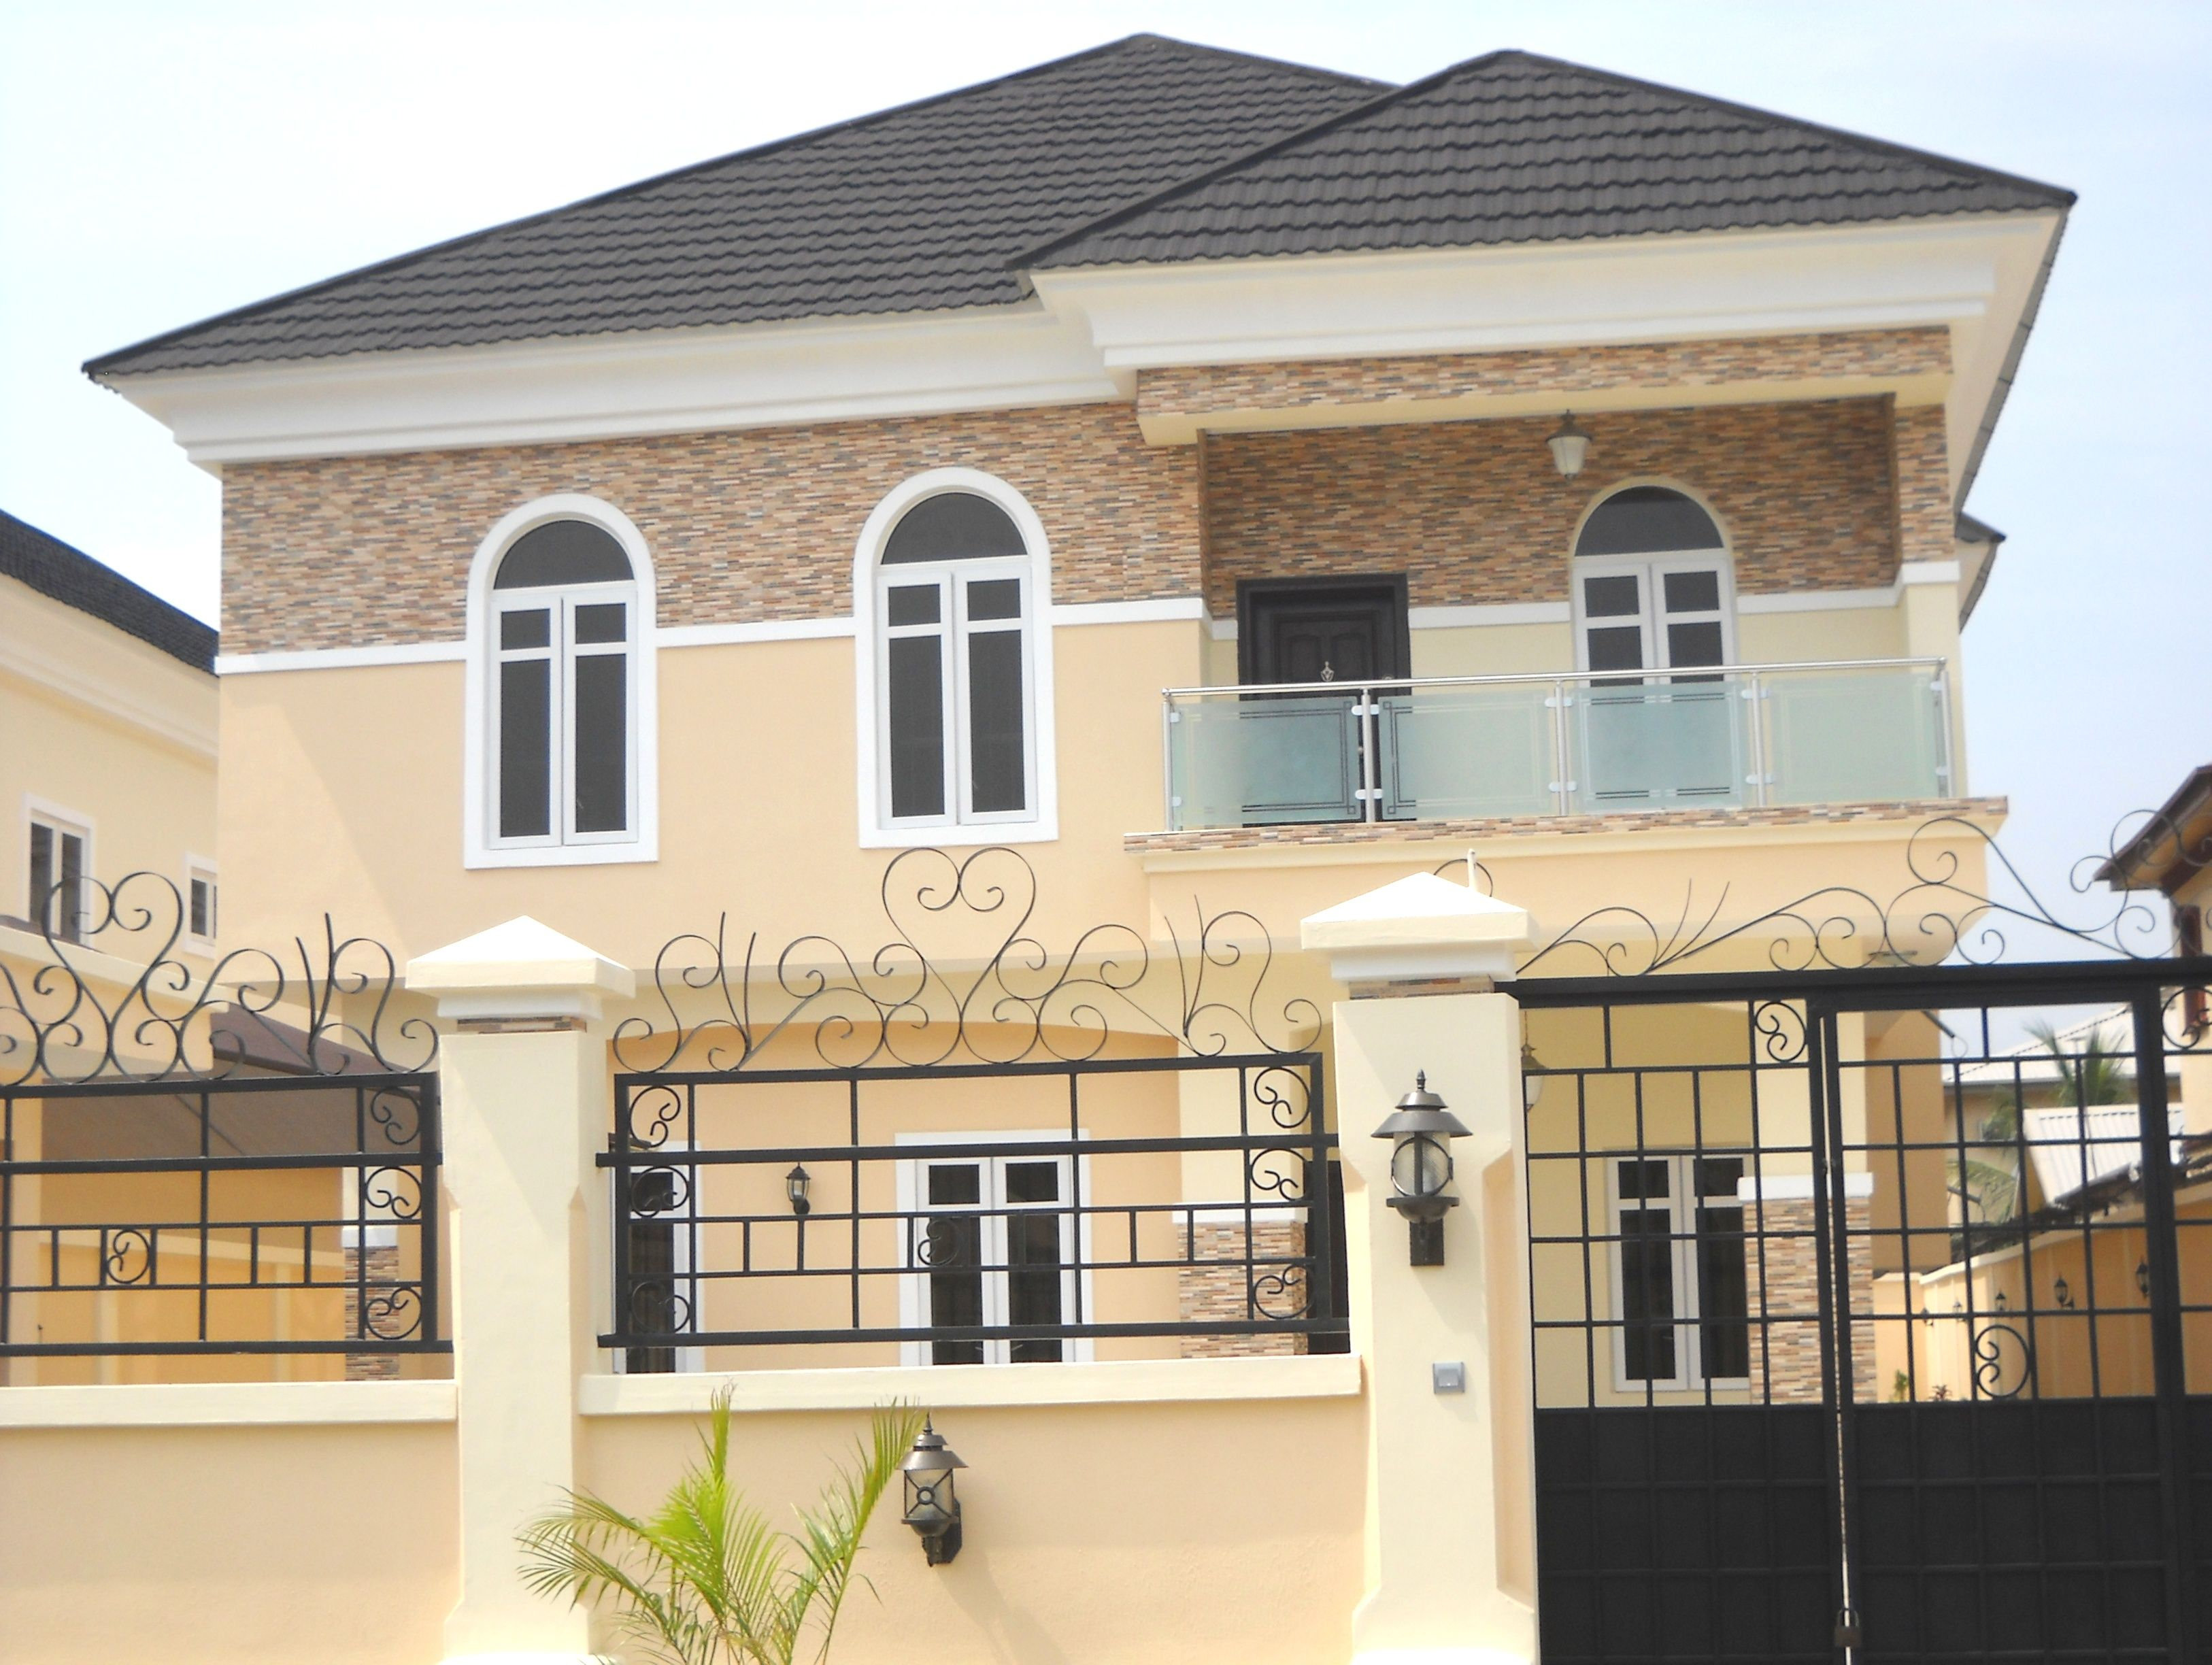 Own beautiful houses in nigeria village lagos island for Nigeria building plans and designs